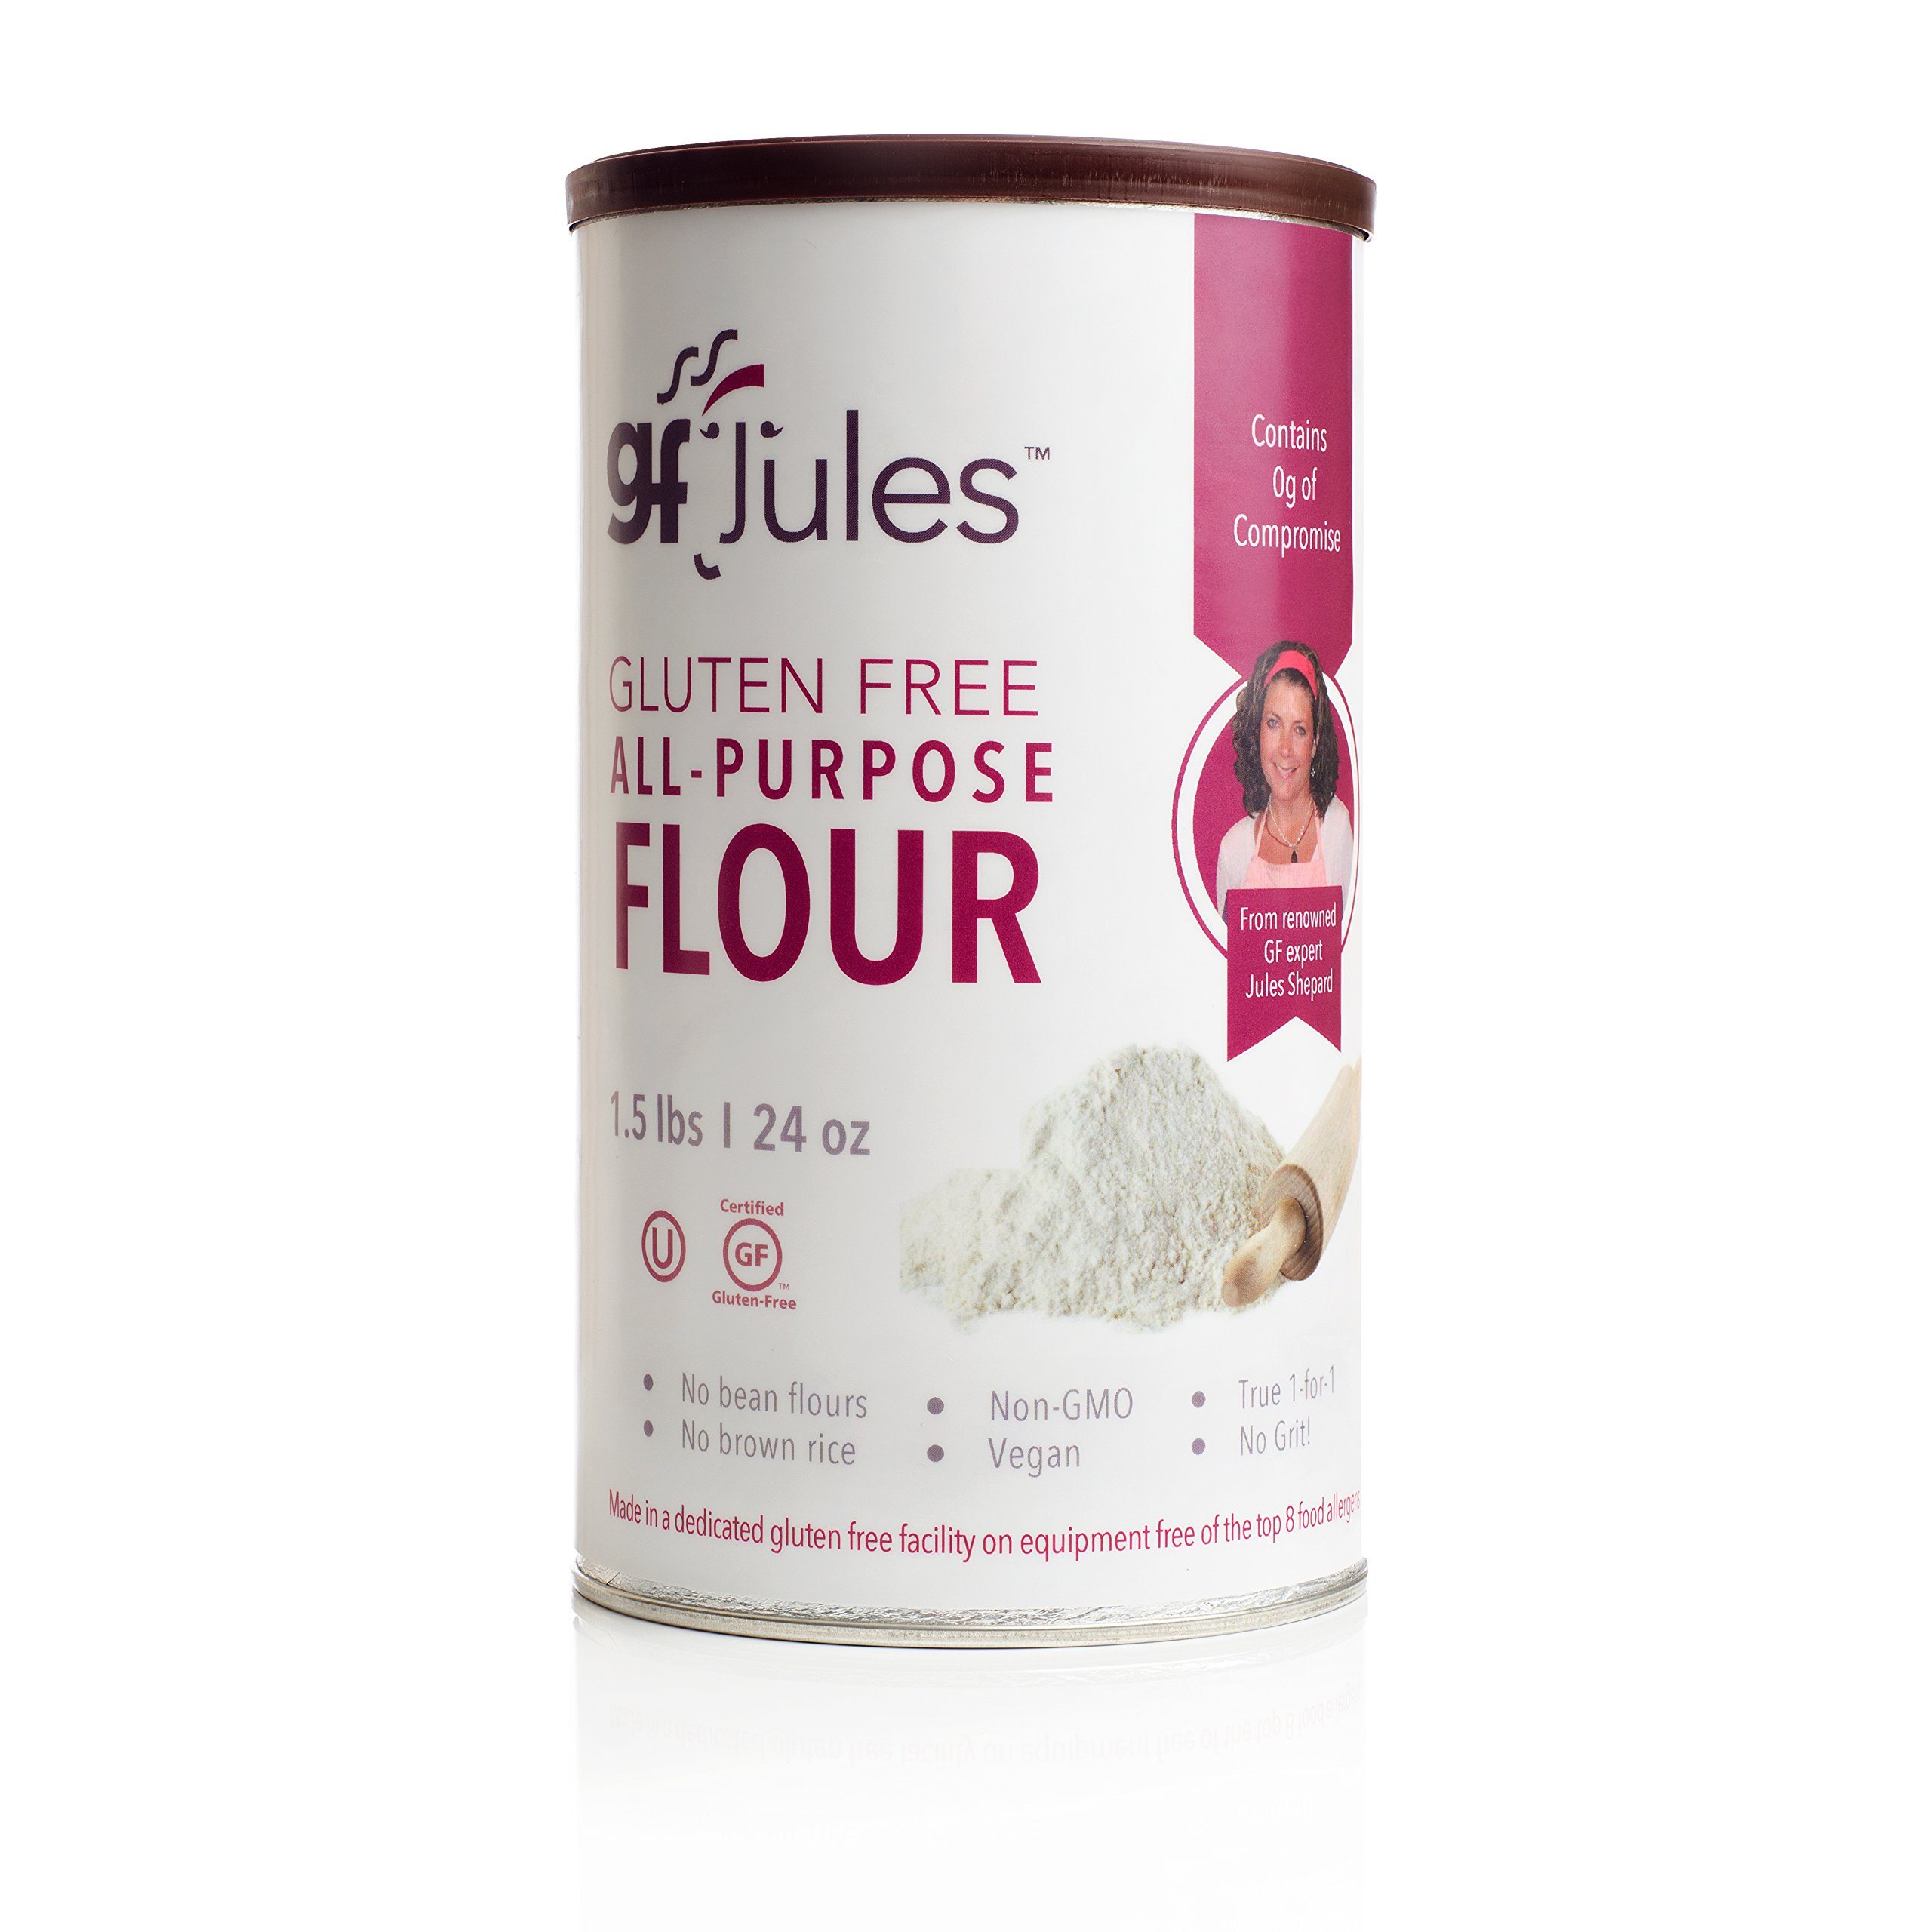 gfJules All Purpose Gluten Free Flour 1.5 lbs - Voted #1 by GF Consumers, Pack of 1